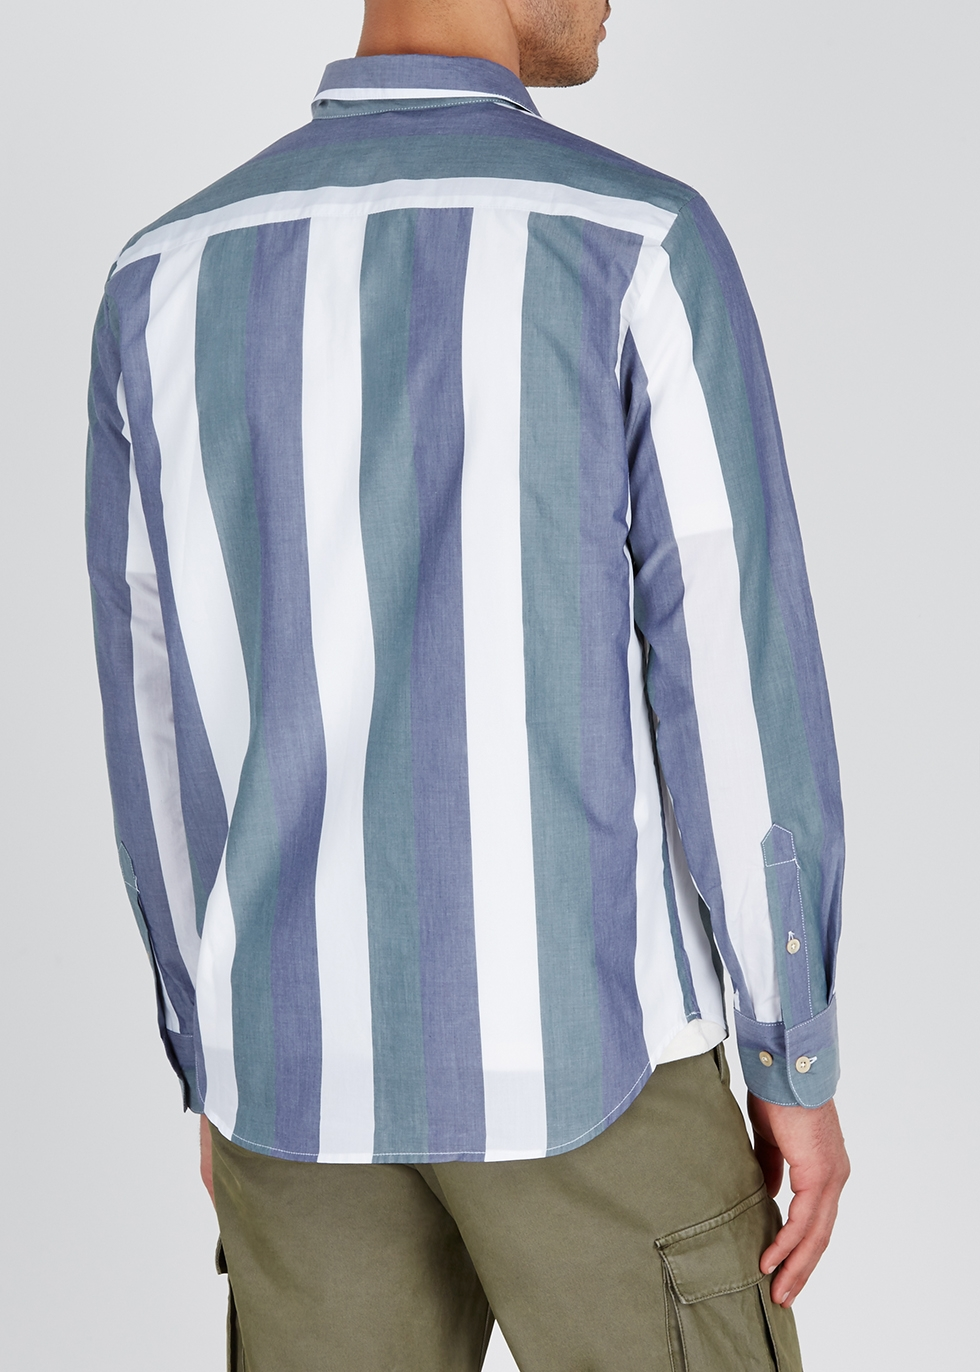 Striped cotton shirt - A Kind of Guise